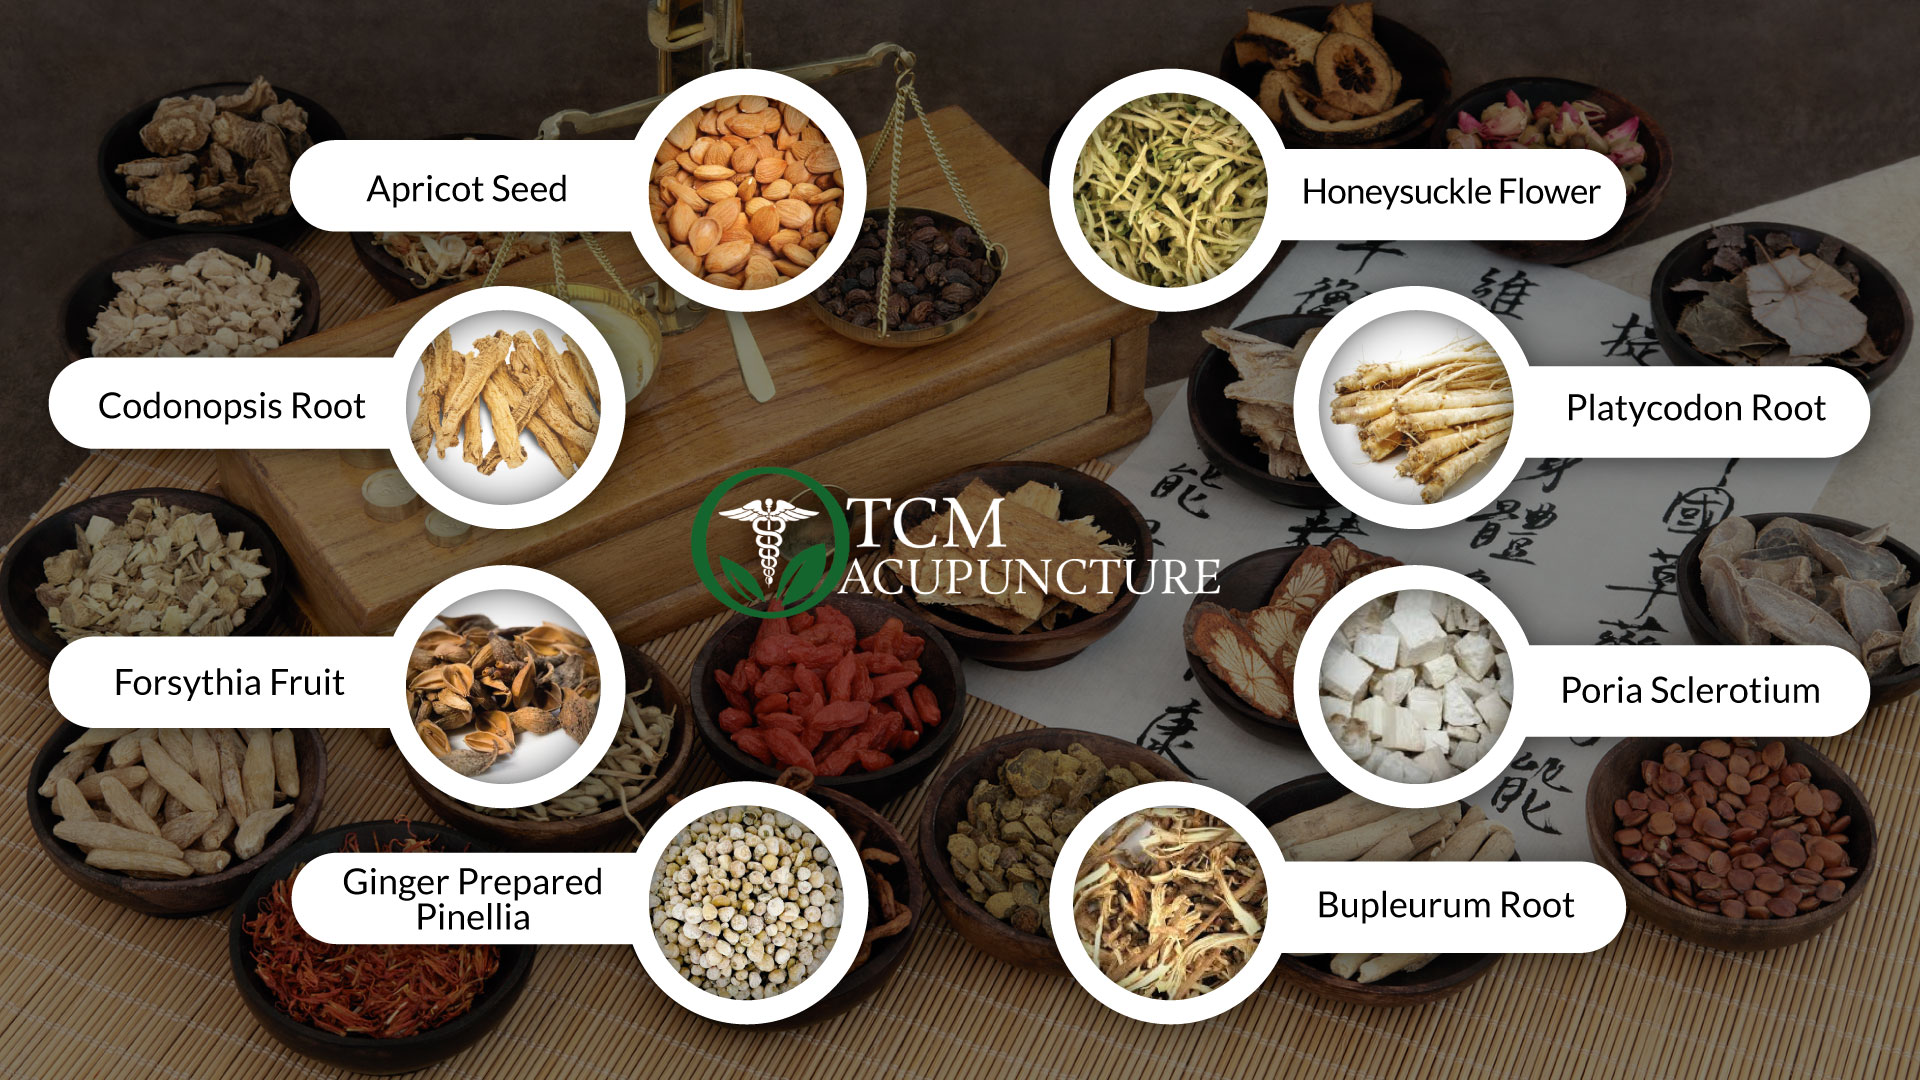 Tcm-acupuncture-Miami-body-mind-spirit-Treatment-Cupping treatment-Infertility treatment- Gua Sha treatment-Tui Na treatment-Herbal Medicine-Moxa Treatment- Skin Disease Treatment- Meditation & more- Tai JI/ Tai Chi